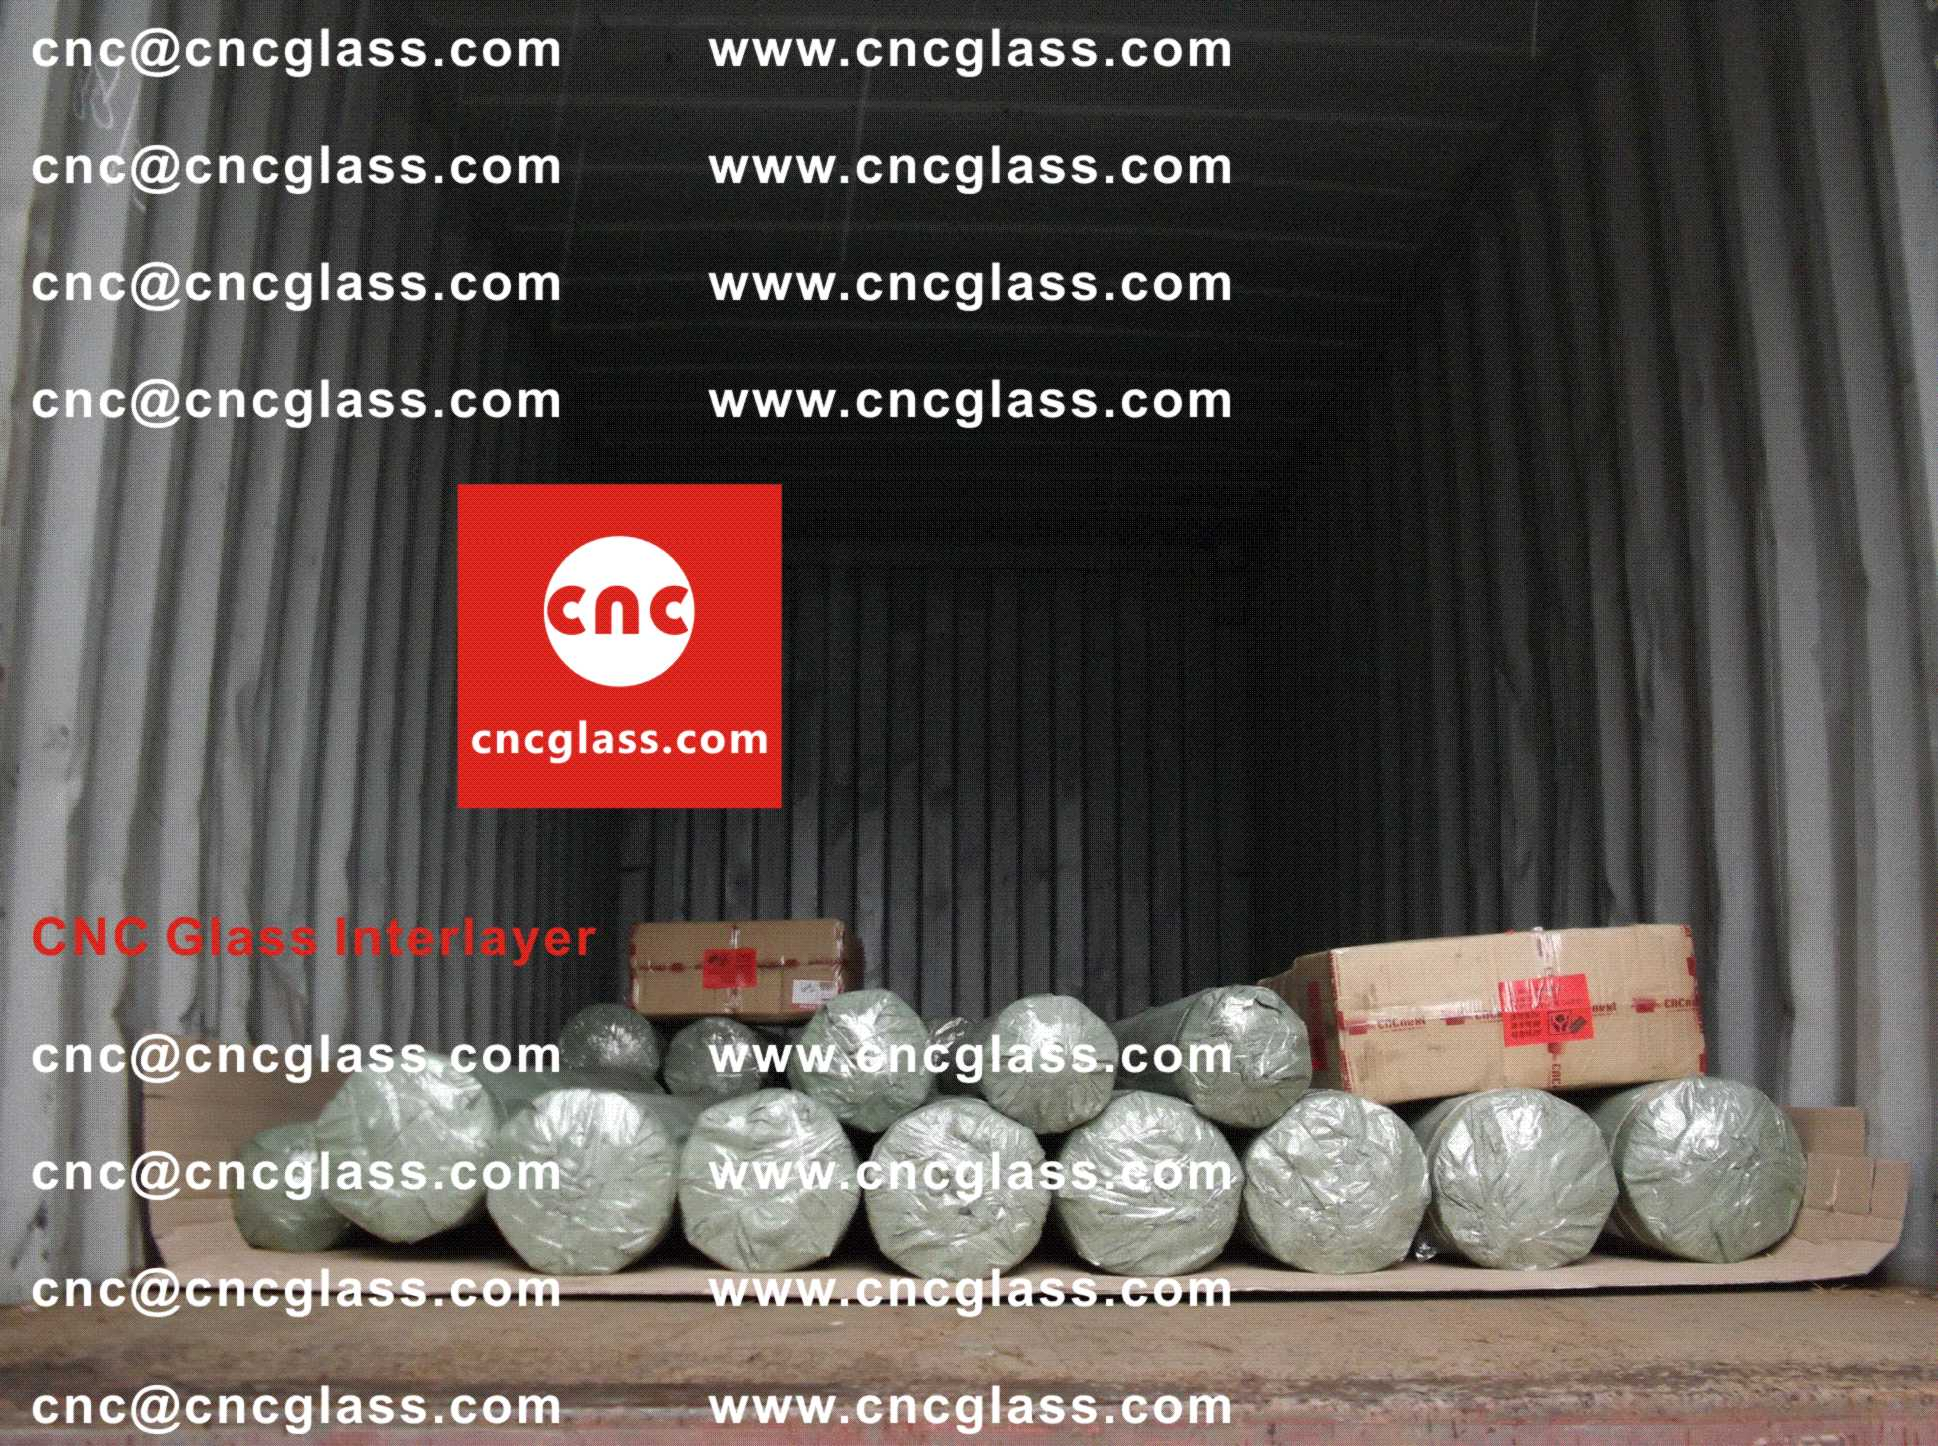 005 Packing Loading EVA Interlayer Film for Safety Laminated Glazing